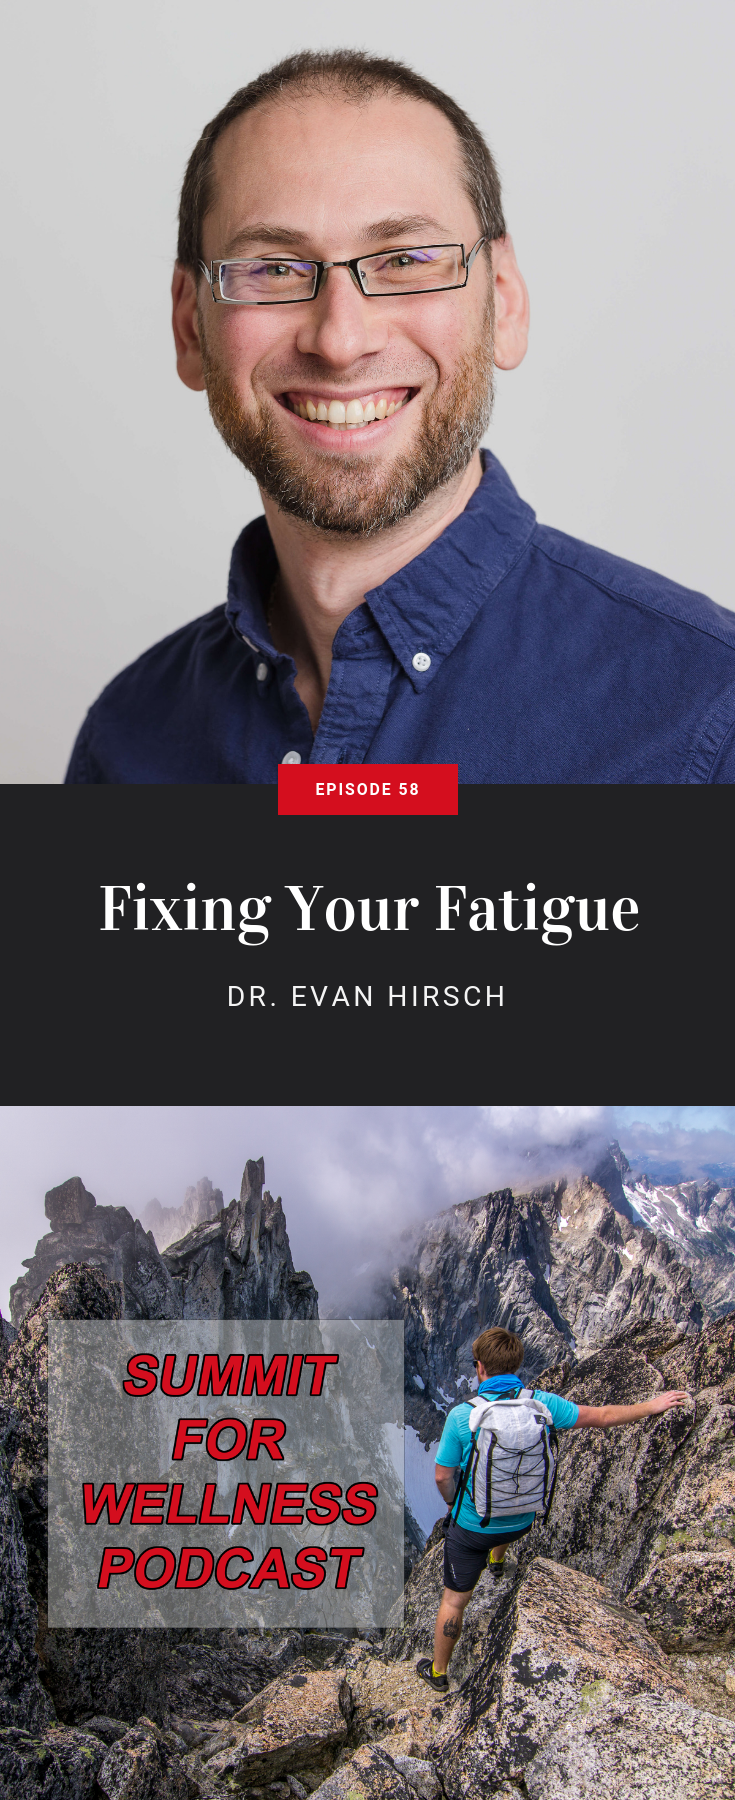 Dr. Evan Hirsch teaches his 4 step process to beating chronic fatigue